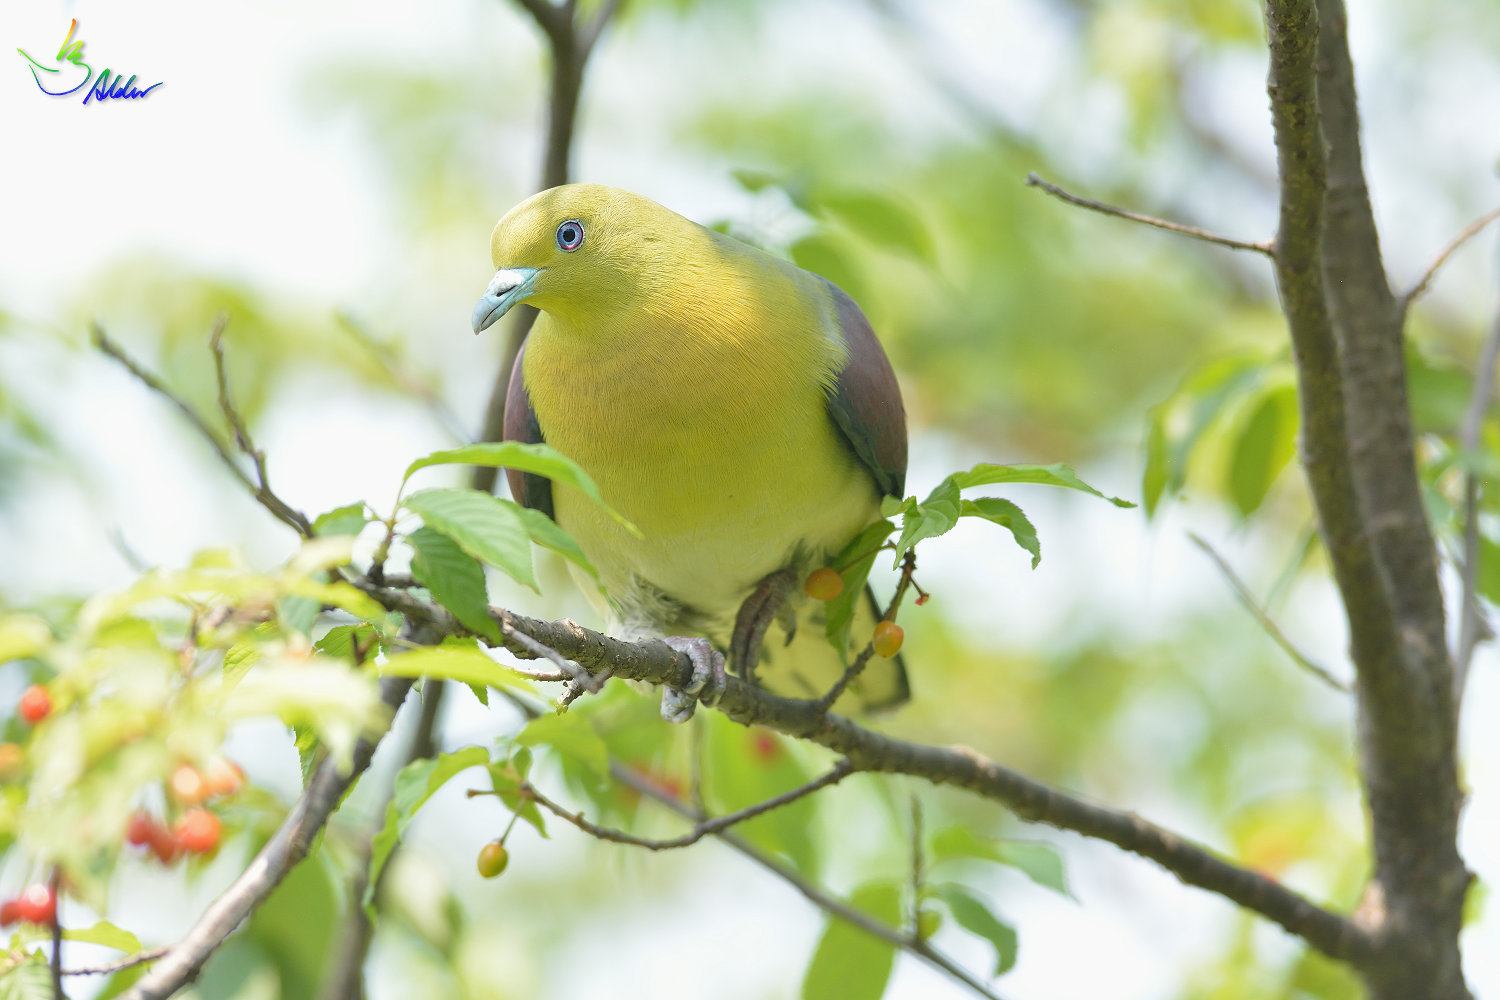 White-bellied_Green_Pigeon_5931